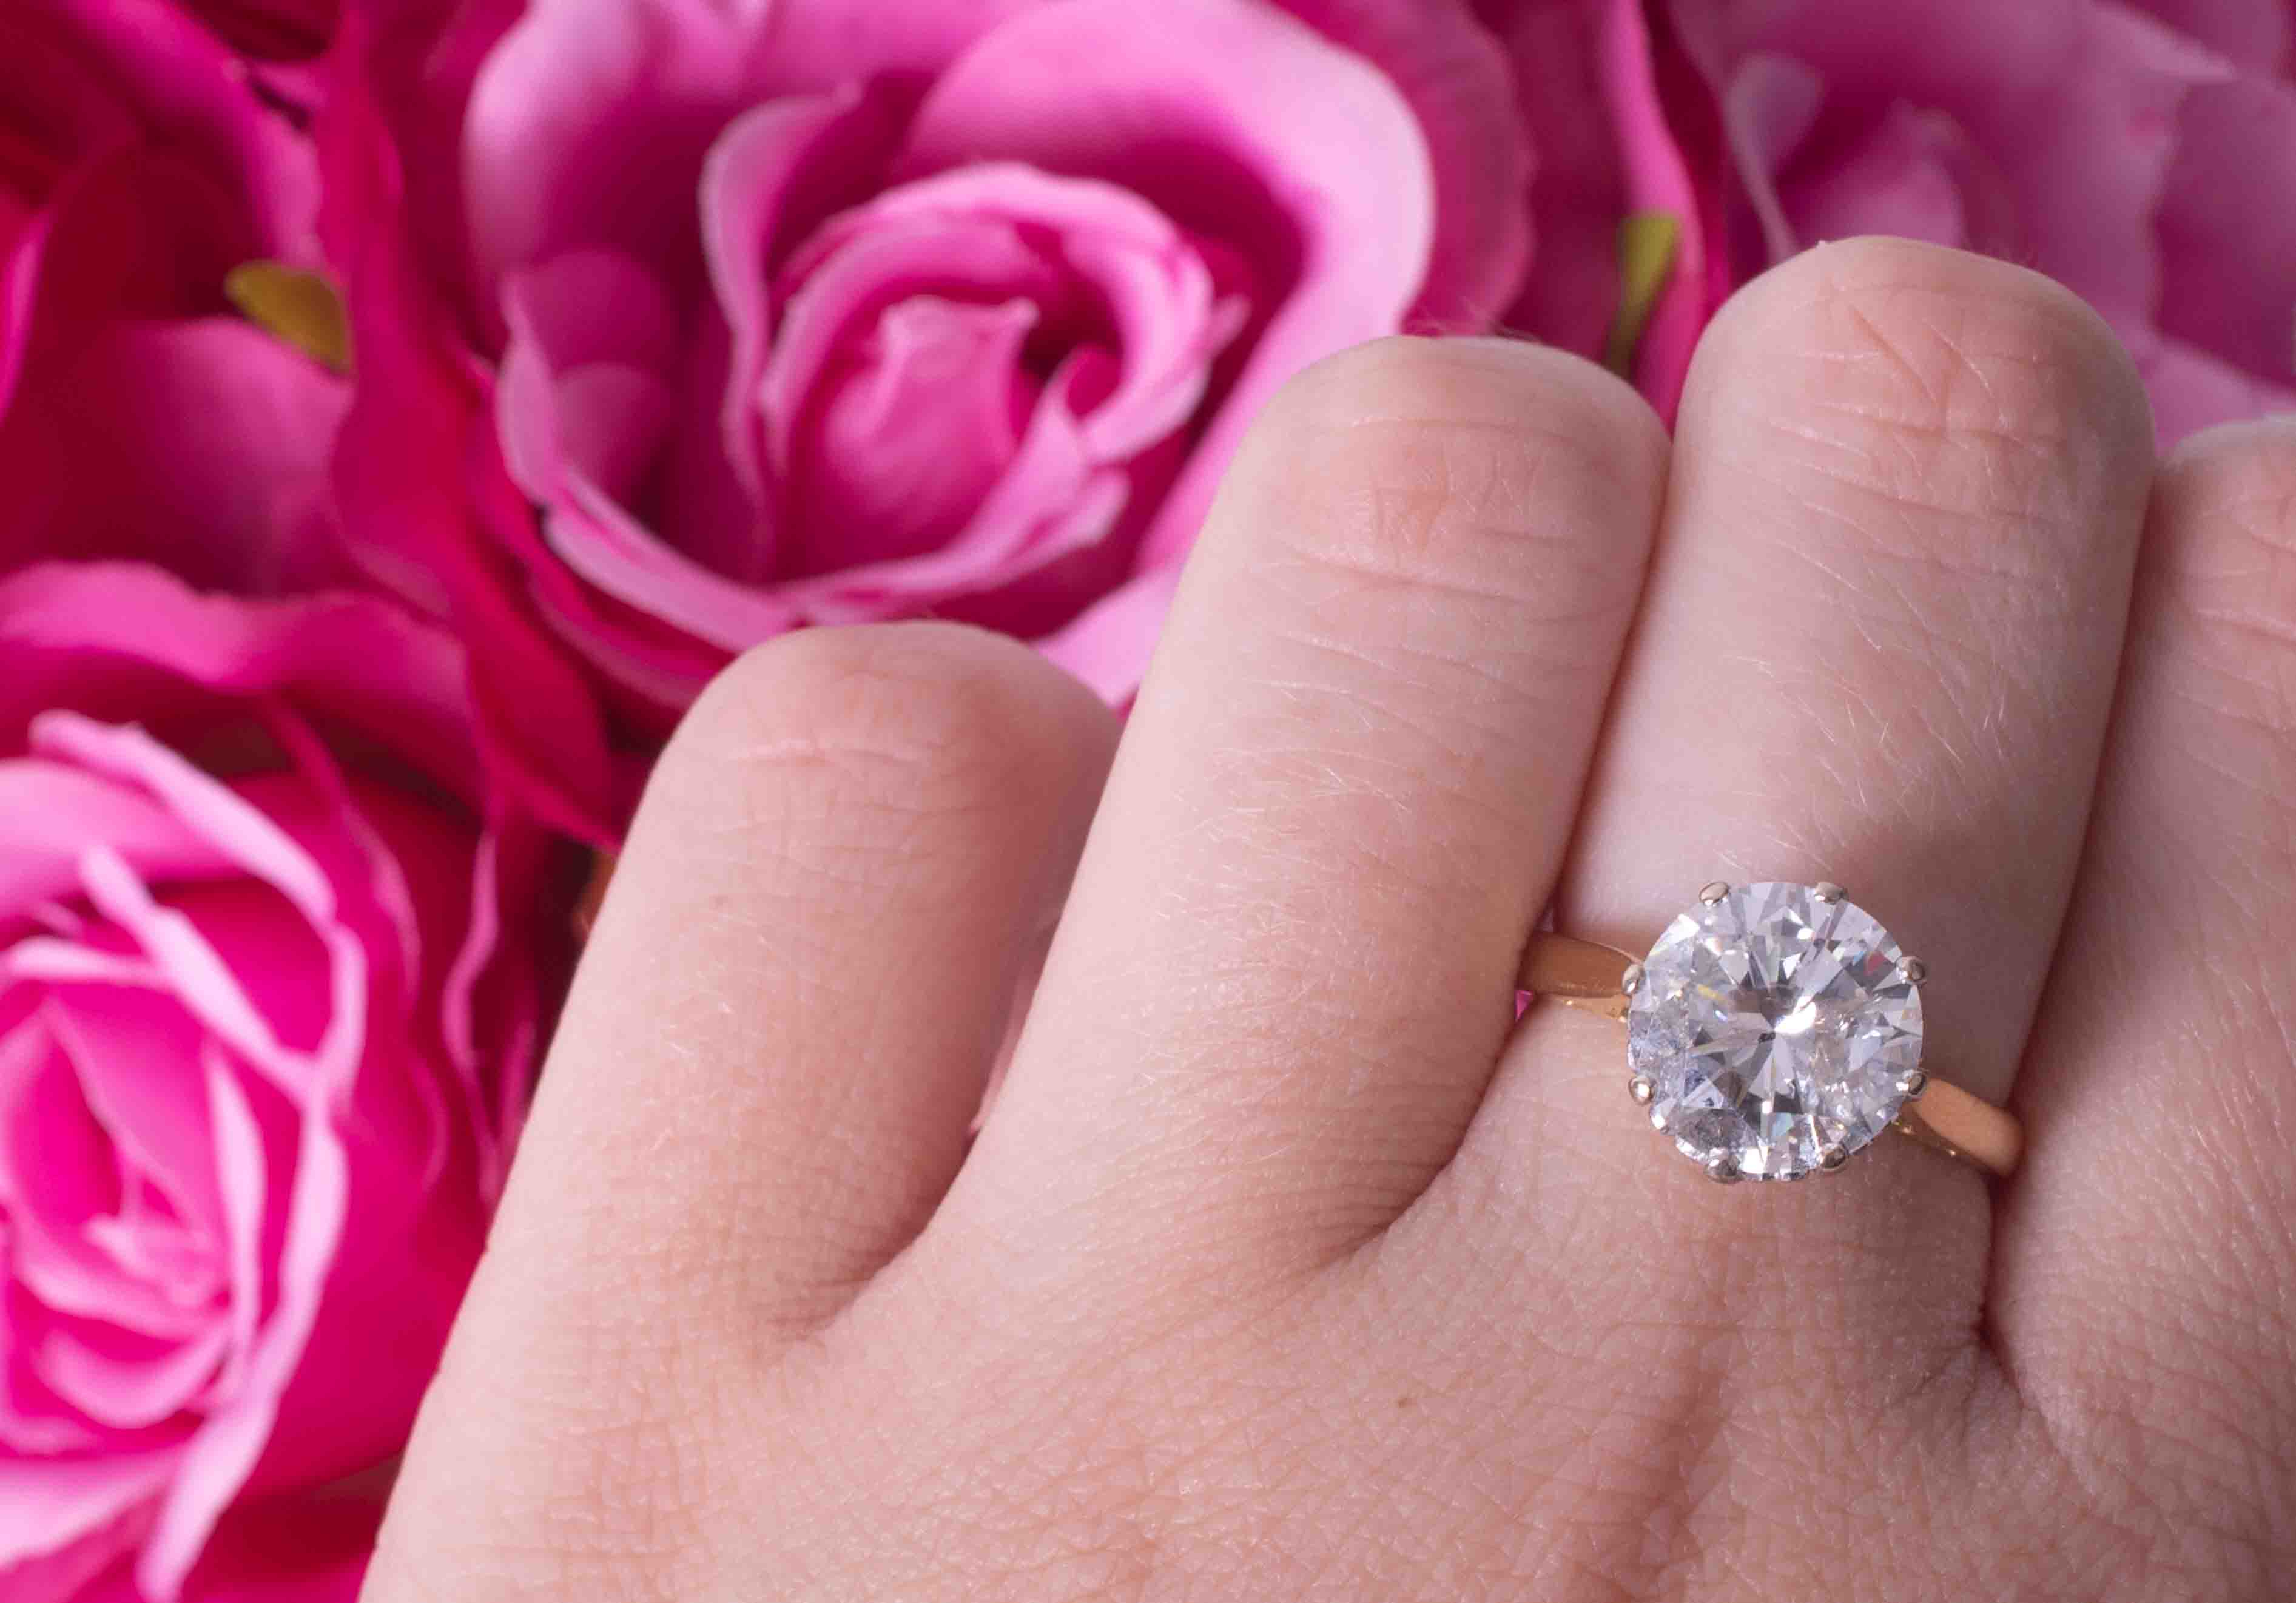 An impressive 18ct yellow & white gold diamond solitaire ring set with approx. 4.00 carats of - Image 6 of 6